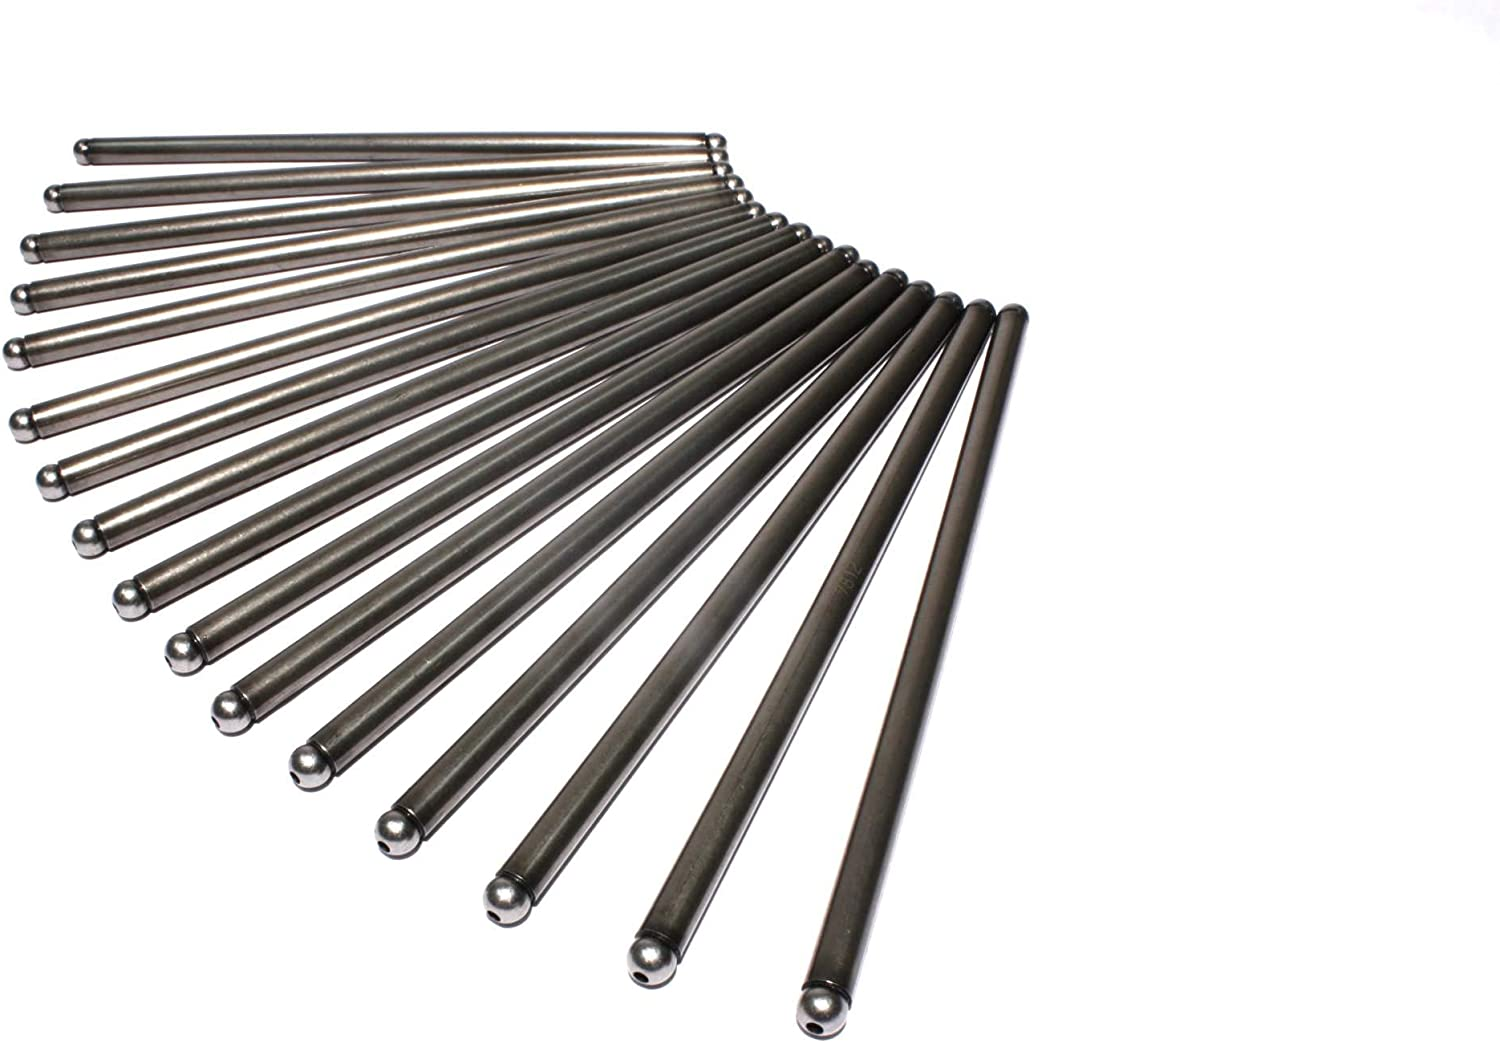 Length 5//16in Comp Cams 7812-16 Hi-Tech Pushrods 7.794 in Diameter